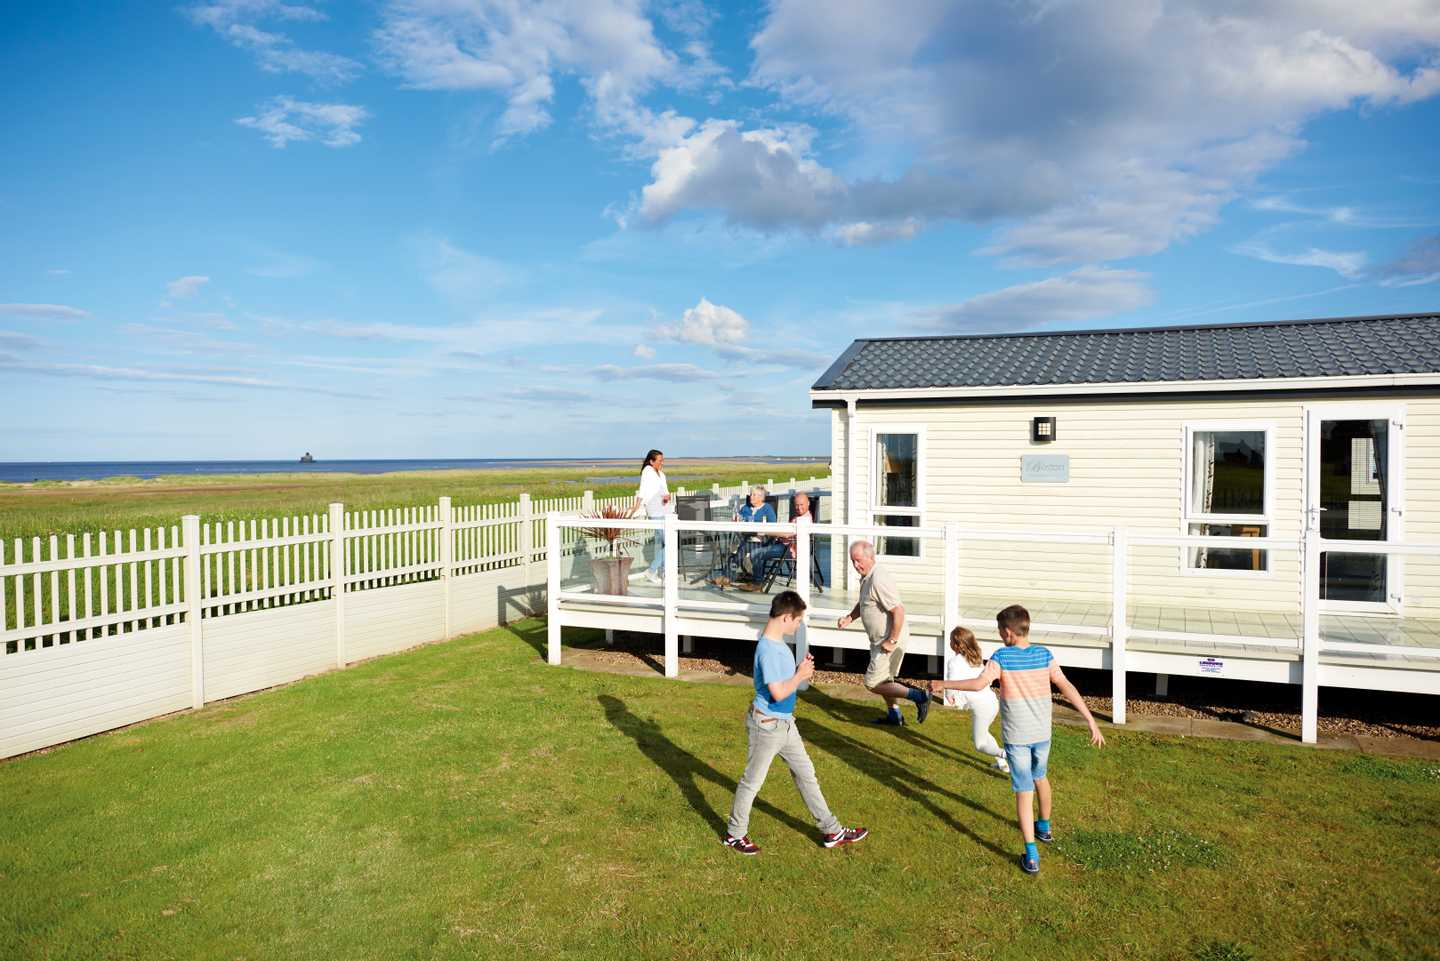 Holiday homes in great locations around the UK